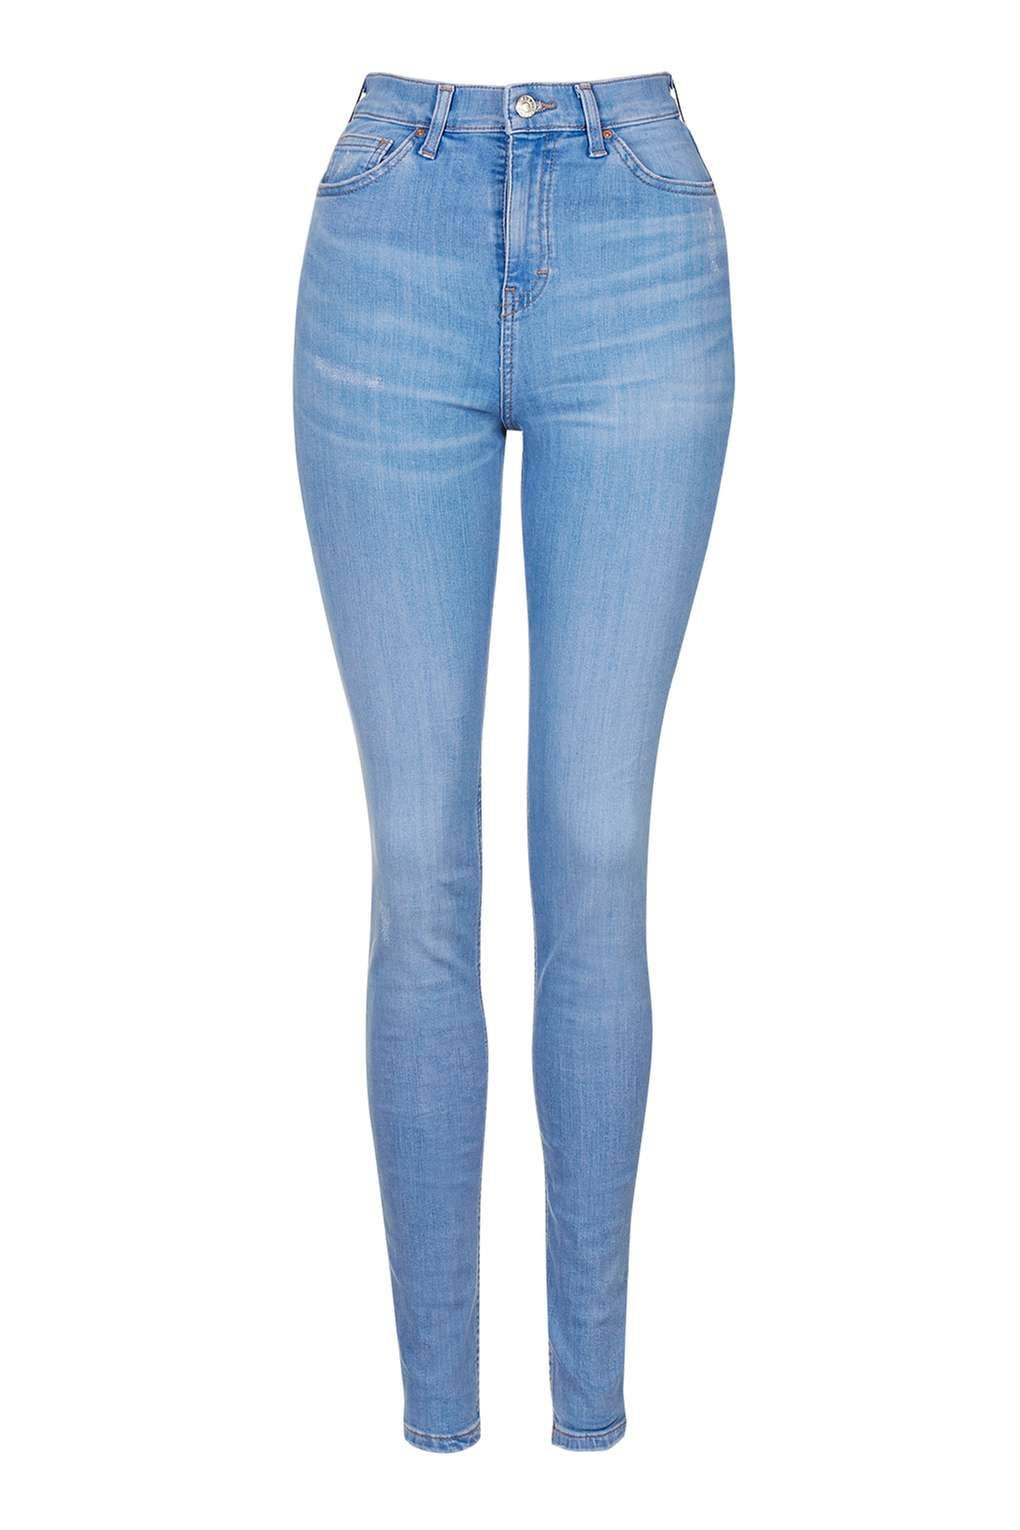 TALL Bright Blue Jamie Jeans | Blue, Europe and Clothing